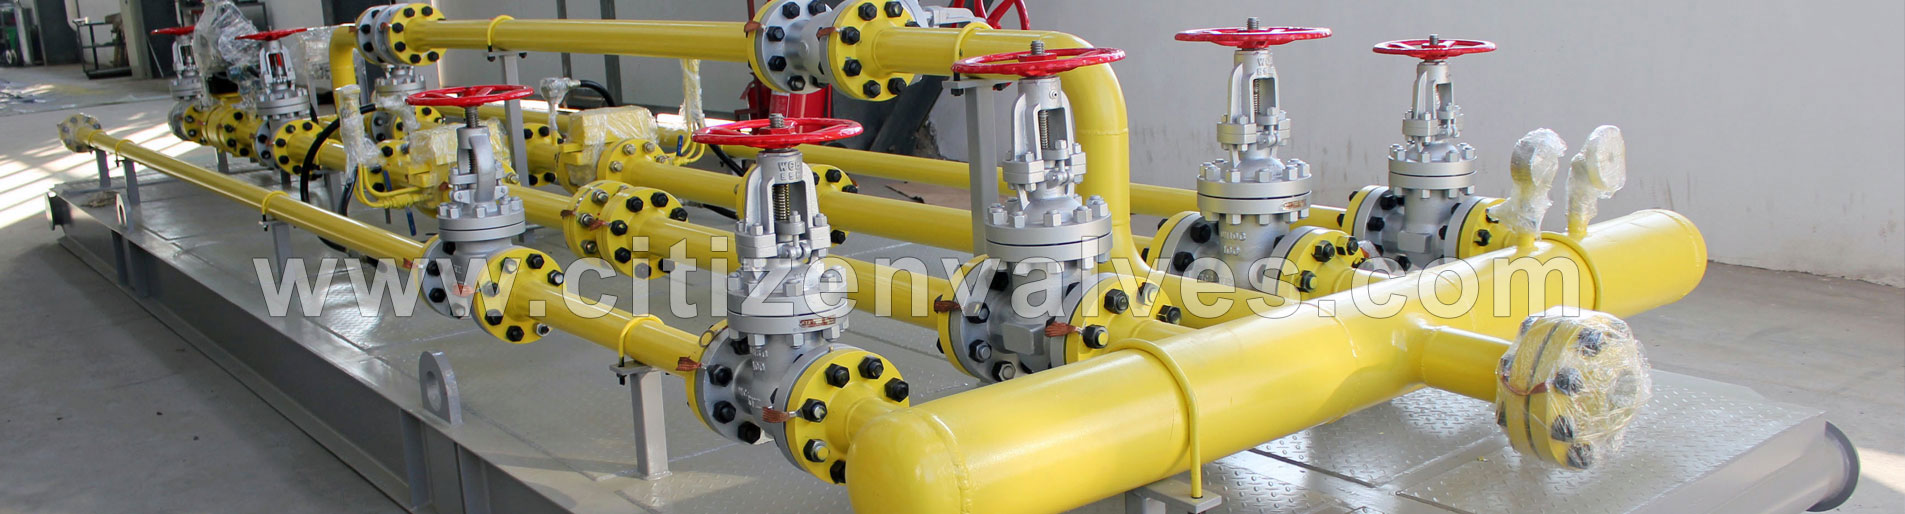 Ball Valves Suppliers Dealers Distributors